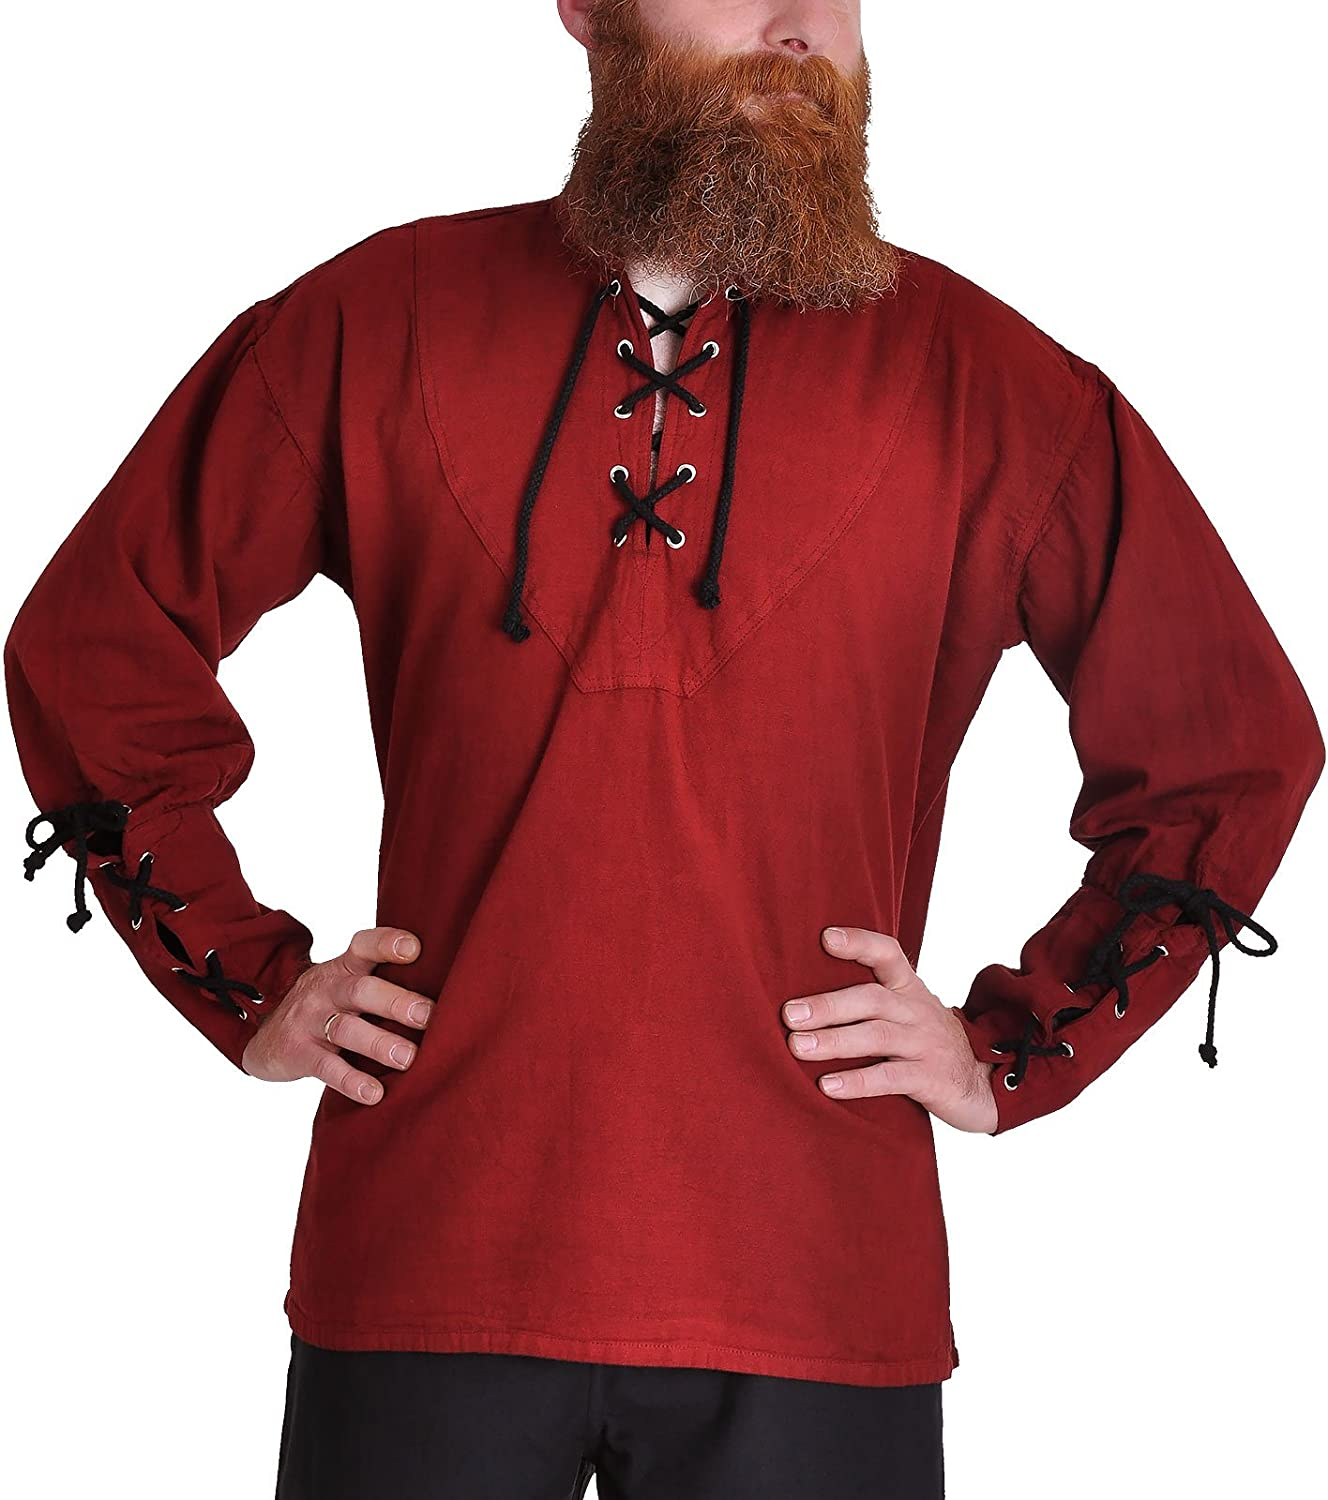 ImexModen Gothic Medieval Red Pirate Shirt with StandUp Collar 1605